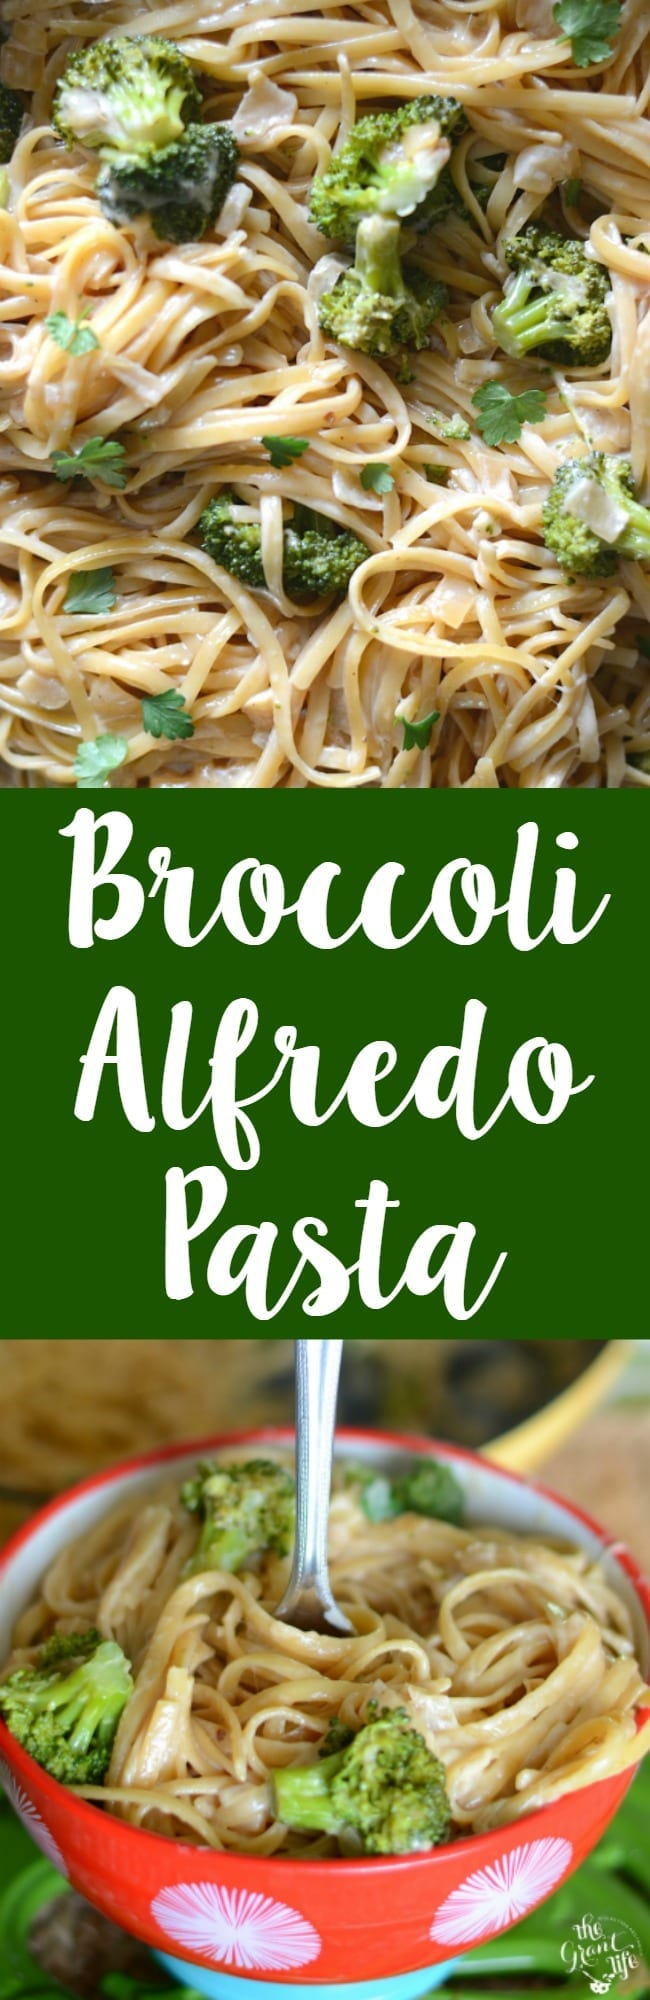 ONE POT broccoli Alfredo pasta!  Done in under 30 minutes and so creamy you'll want to make it every night!